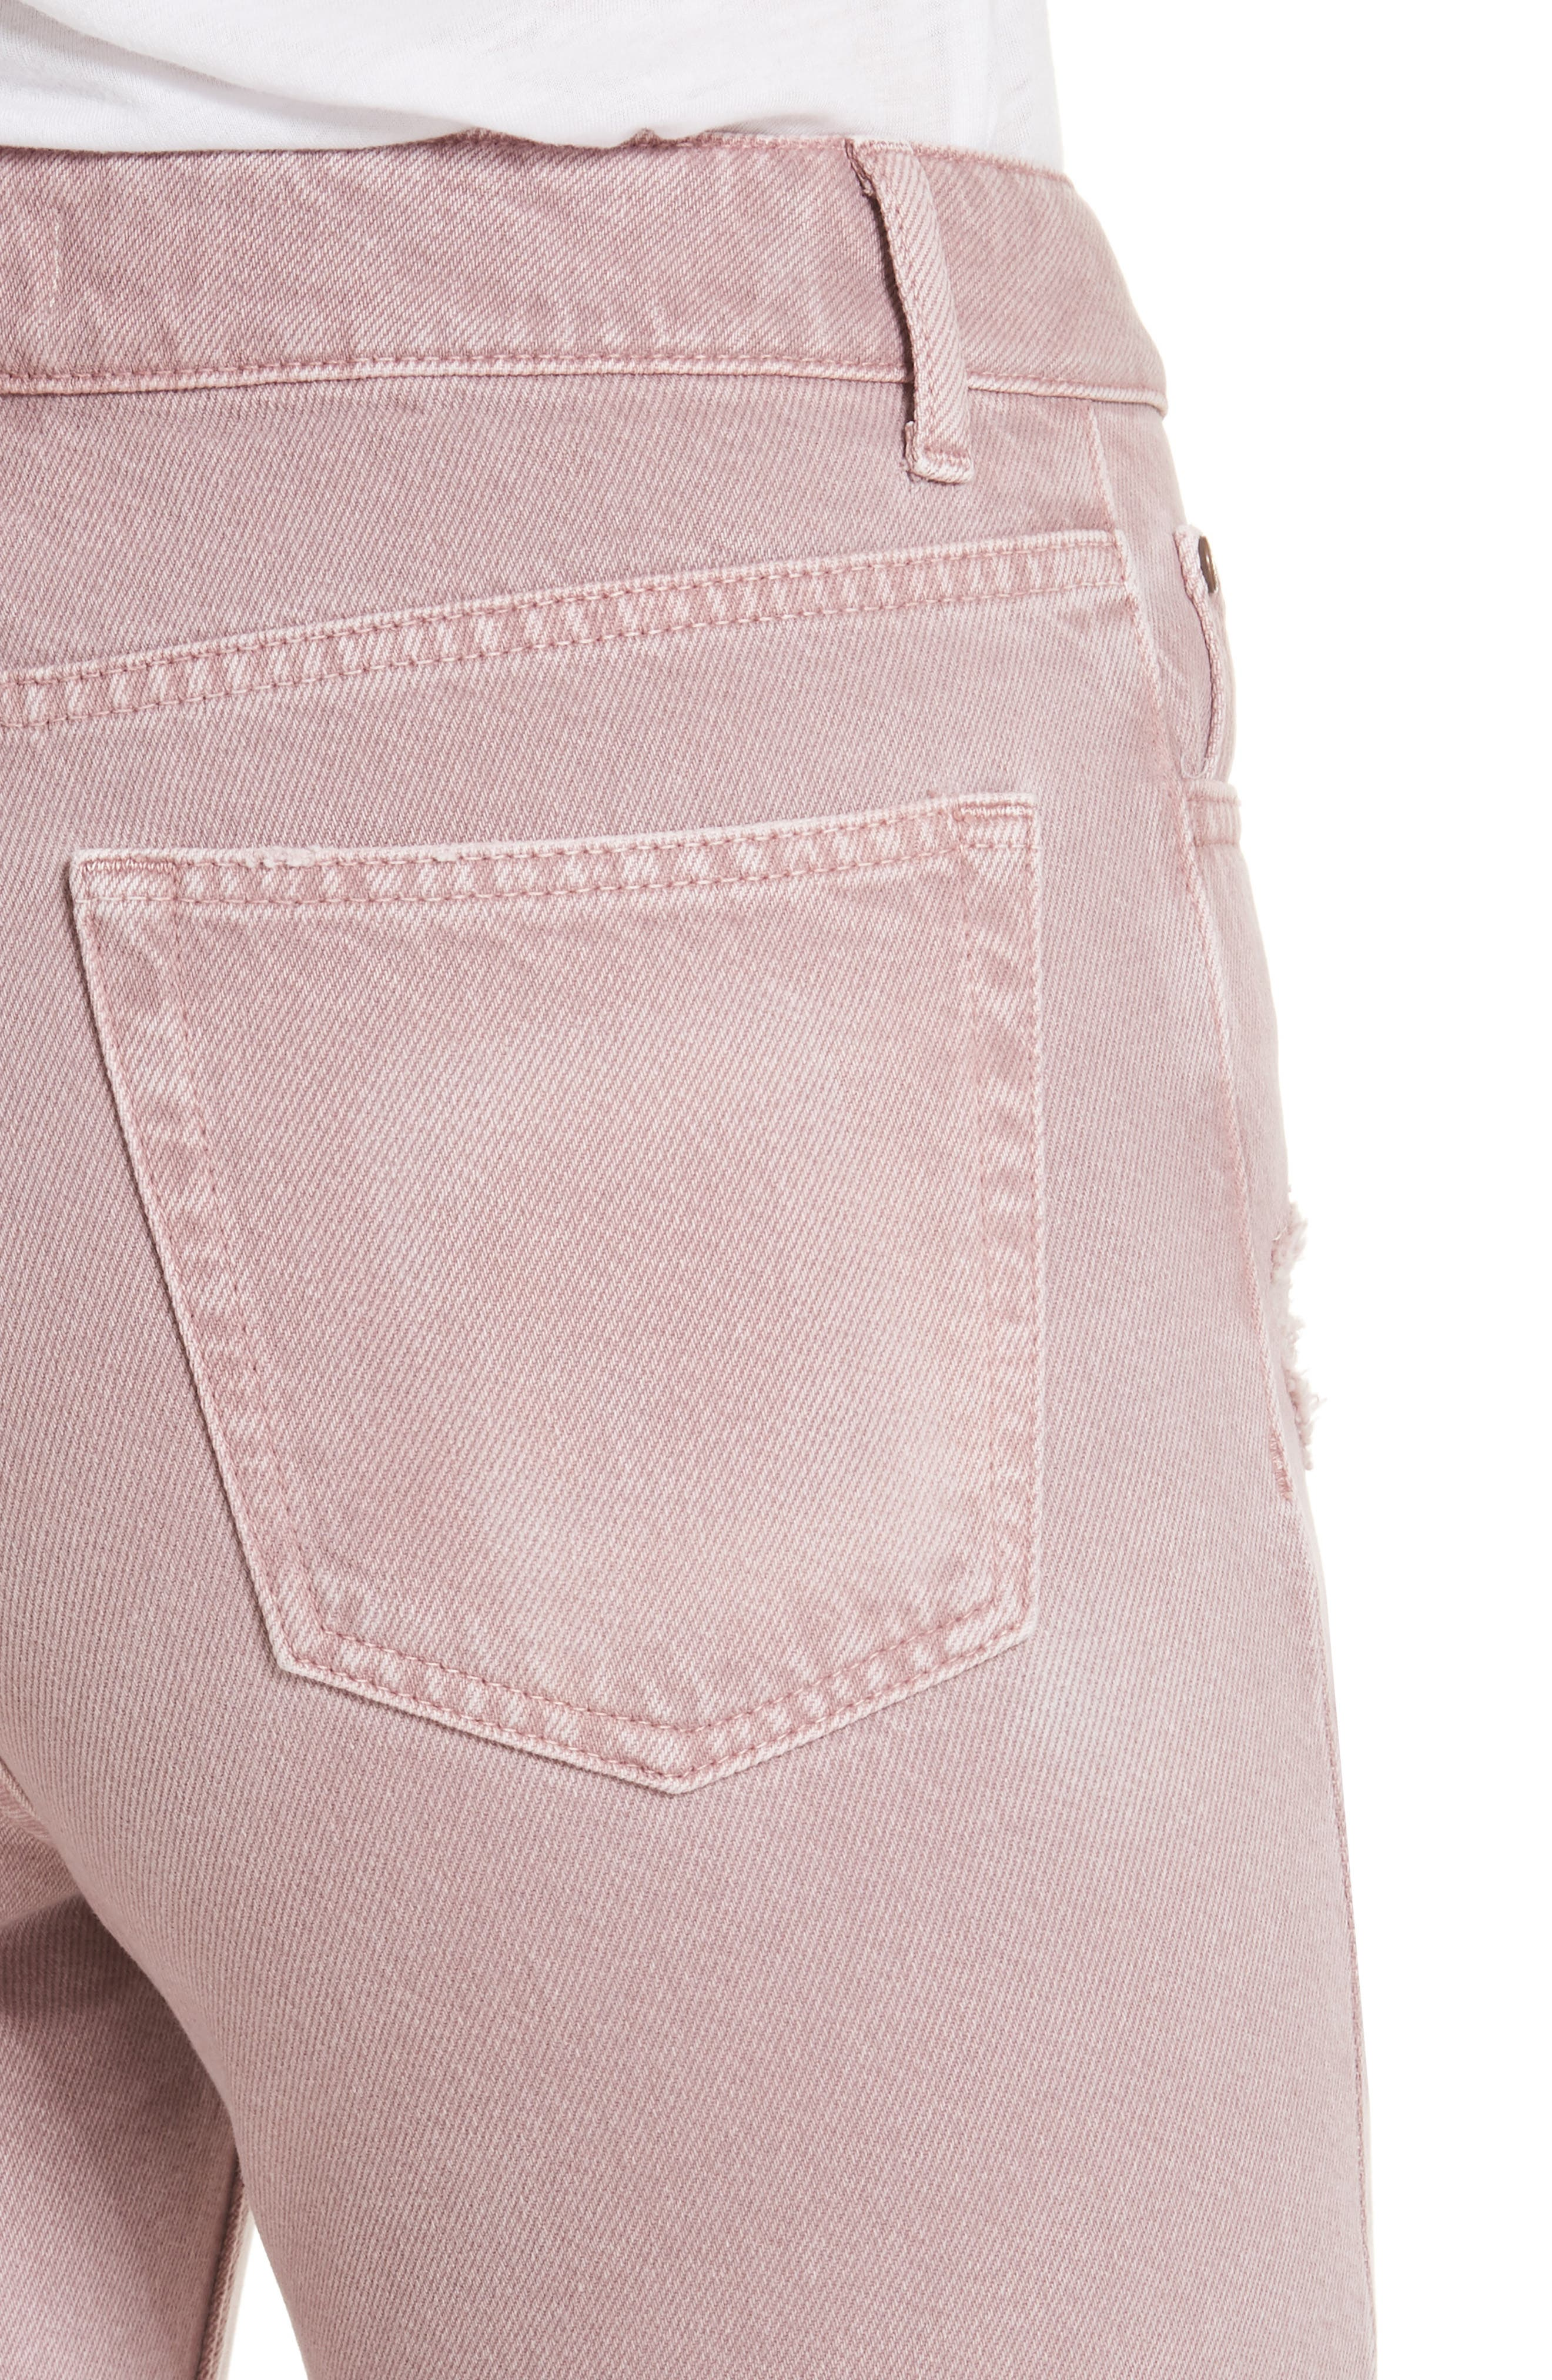 Ripped Raw Edge Jeans,                             Alternate thumbnail 4, color,                             650